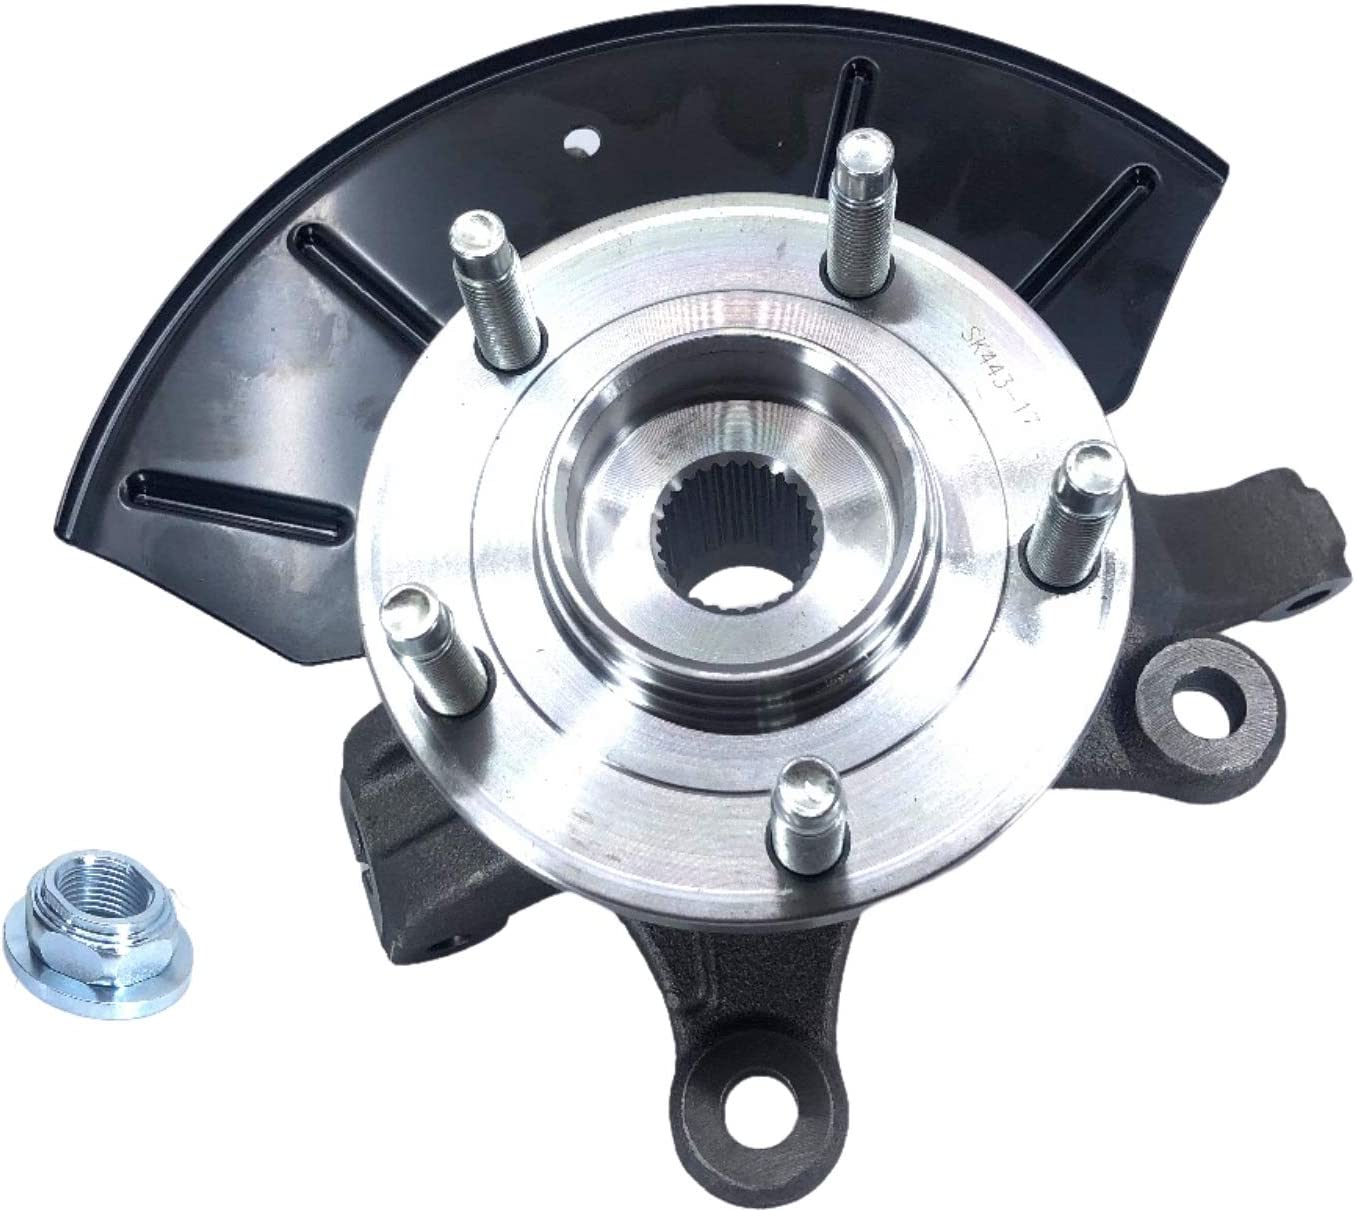 Doc's Loaded Steering Knuckle Front fits Bombing free shipping F 2001-2012 Max 70% OFF Side Driver